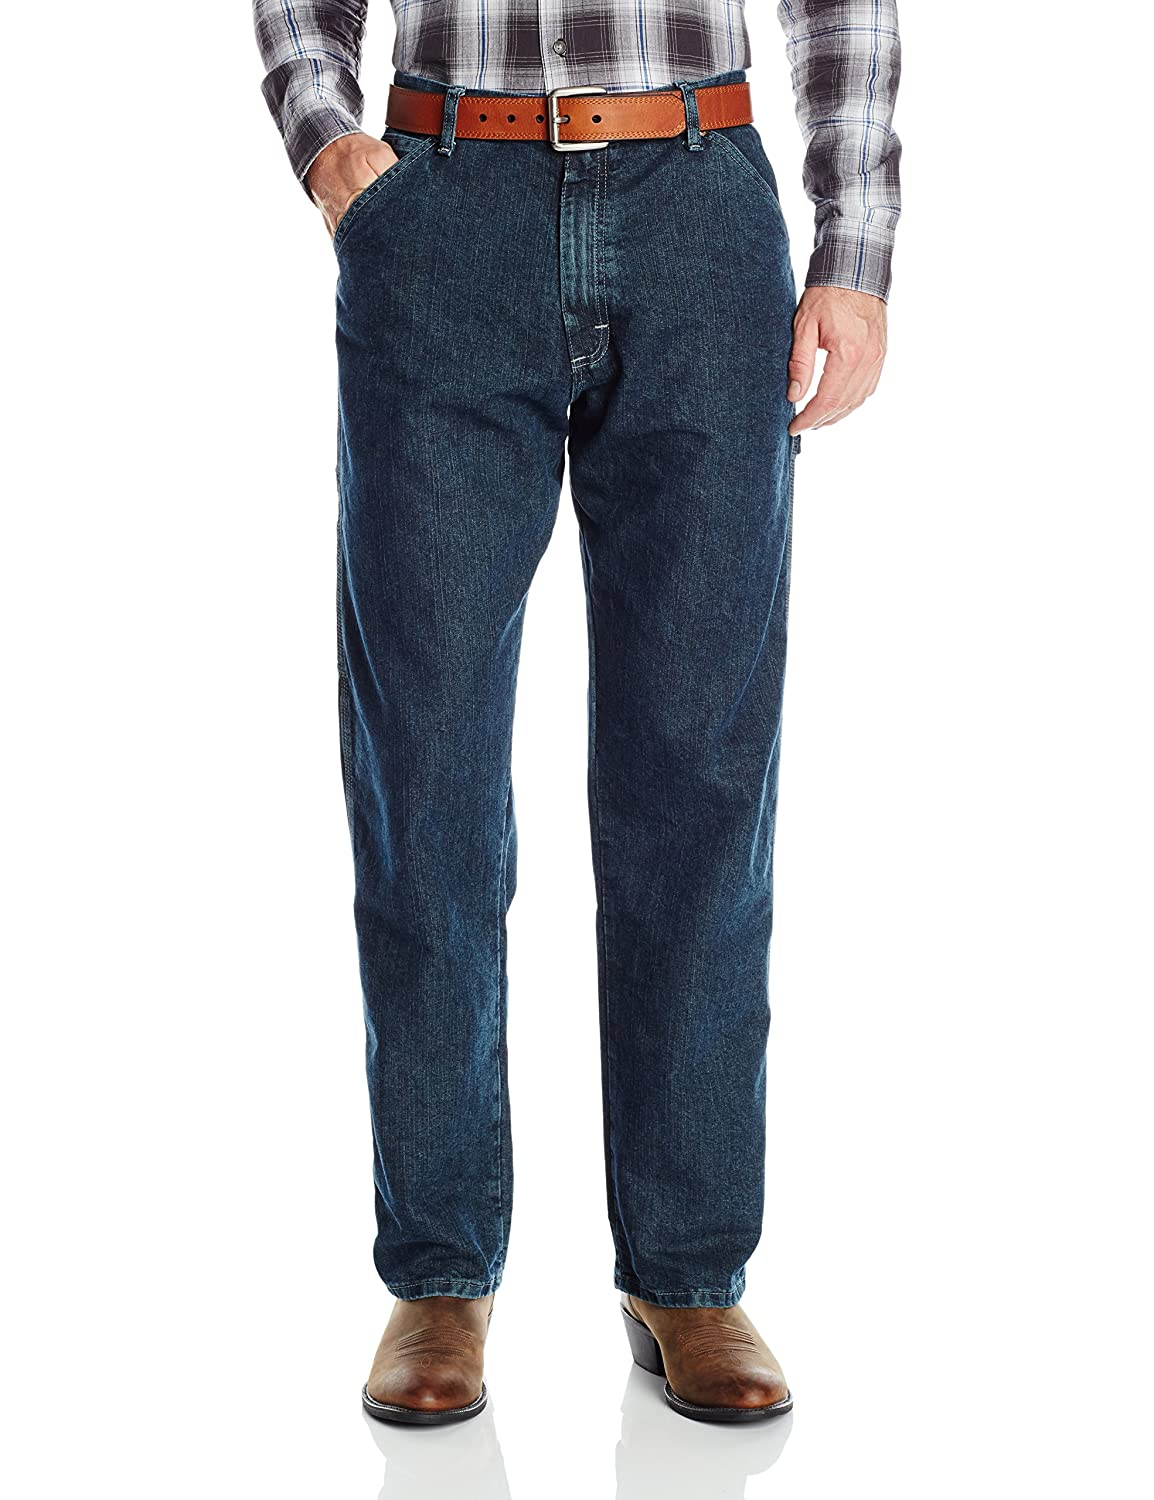 Wrangler Authentics Men's Classic Carpenter Jean